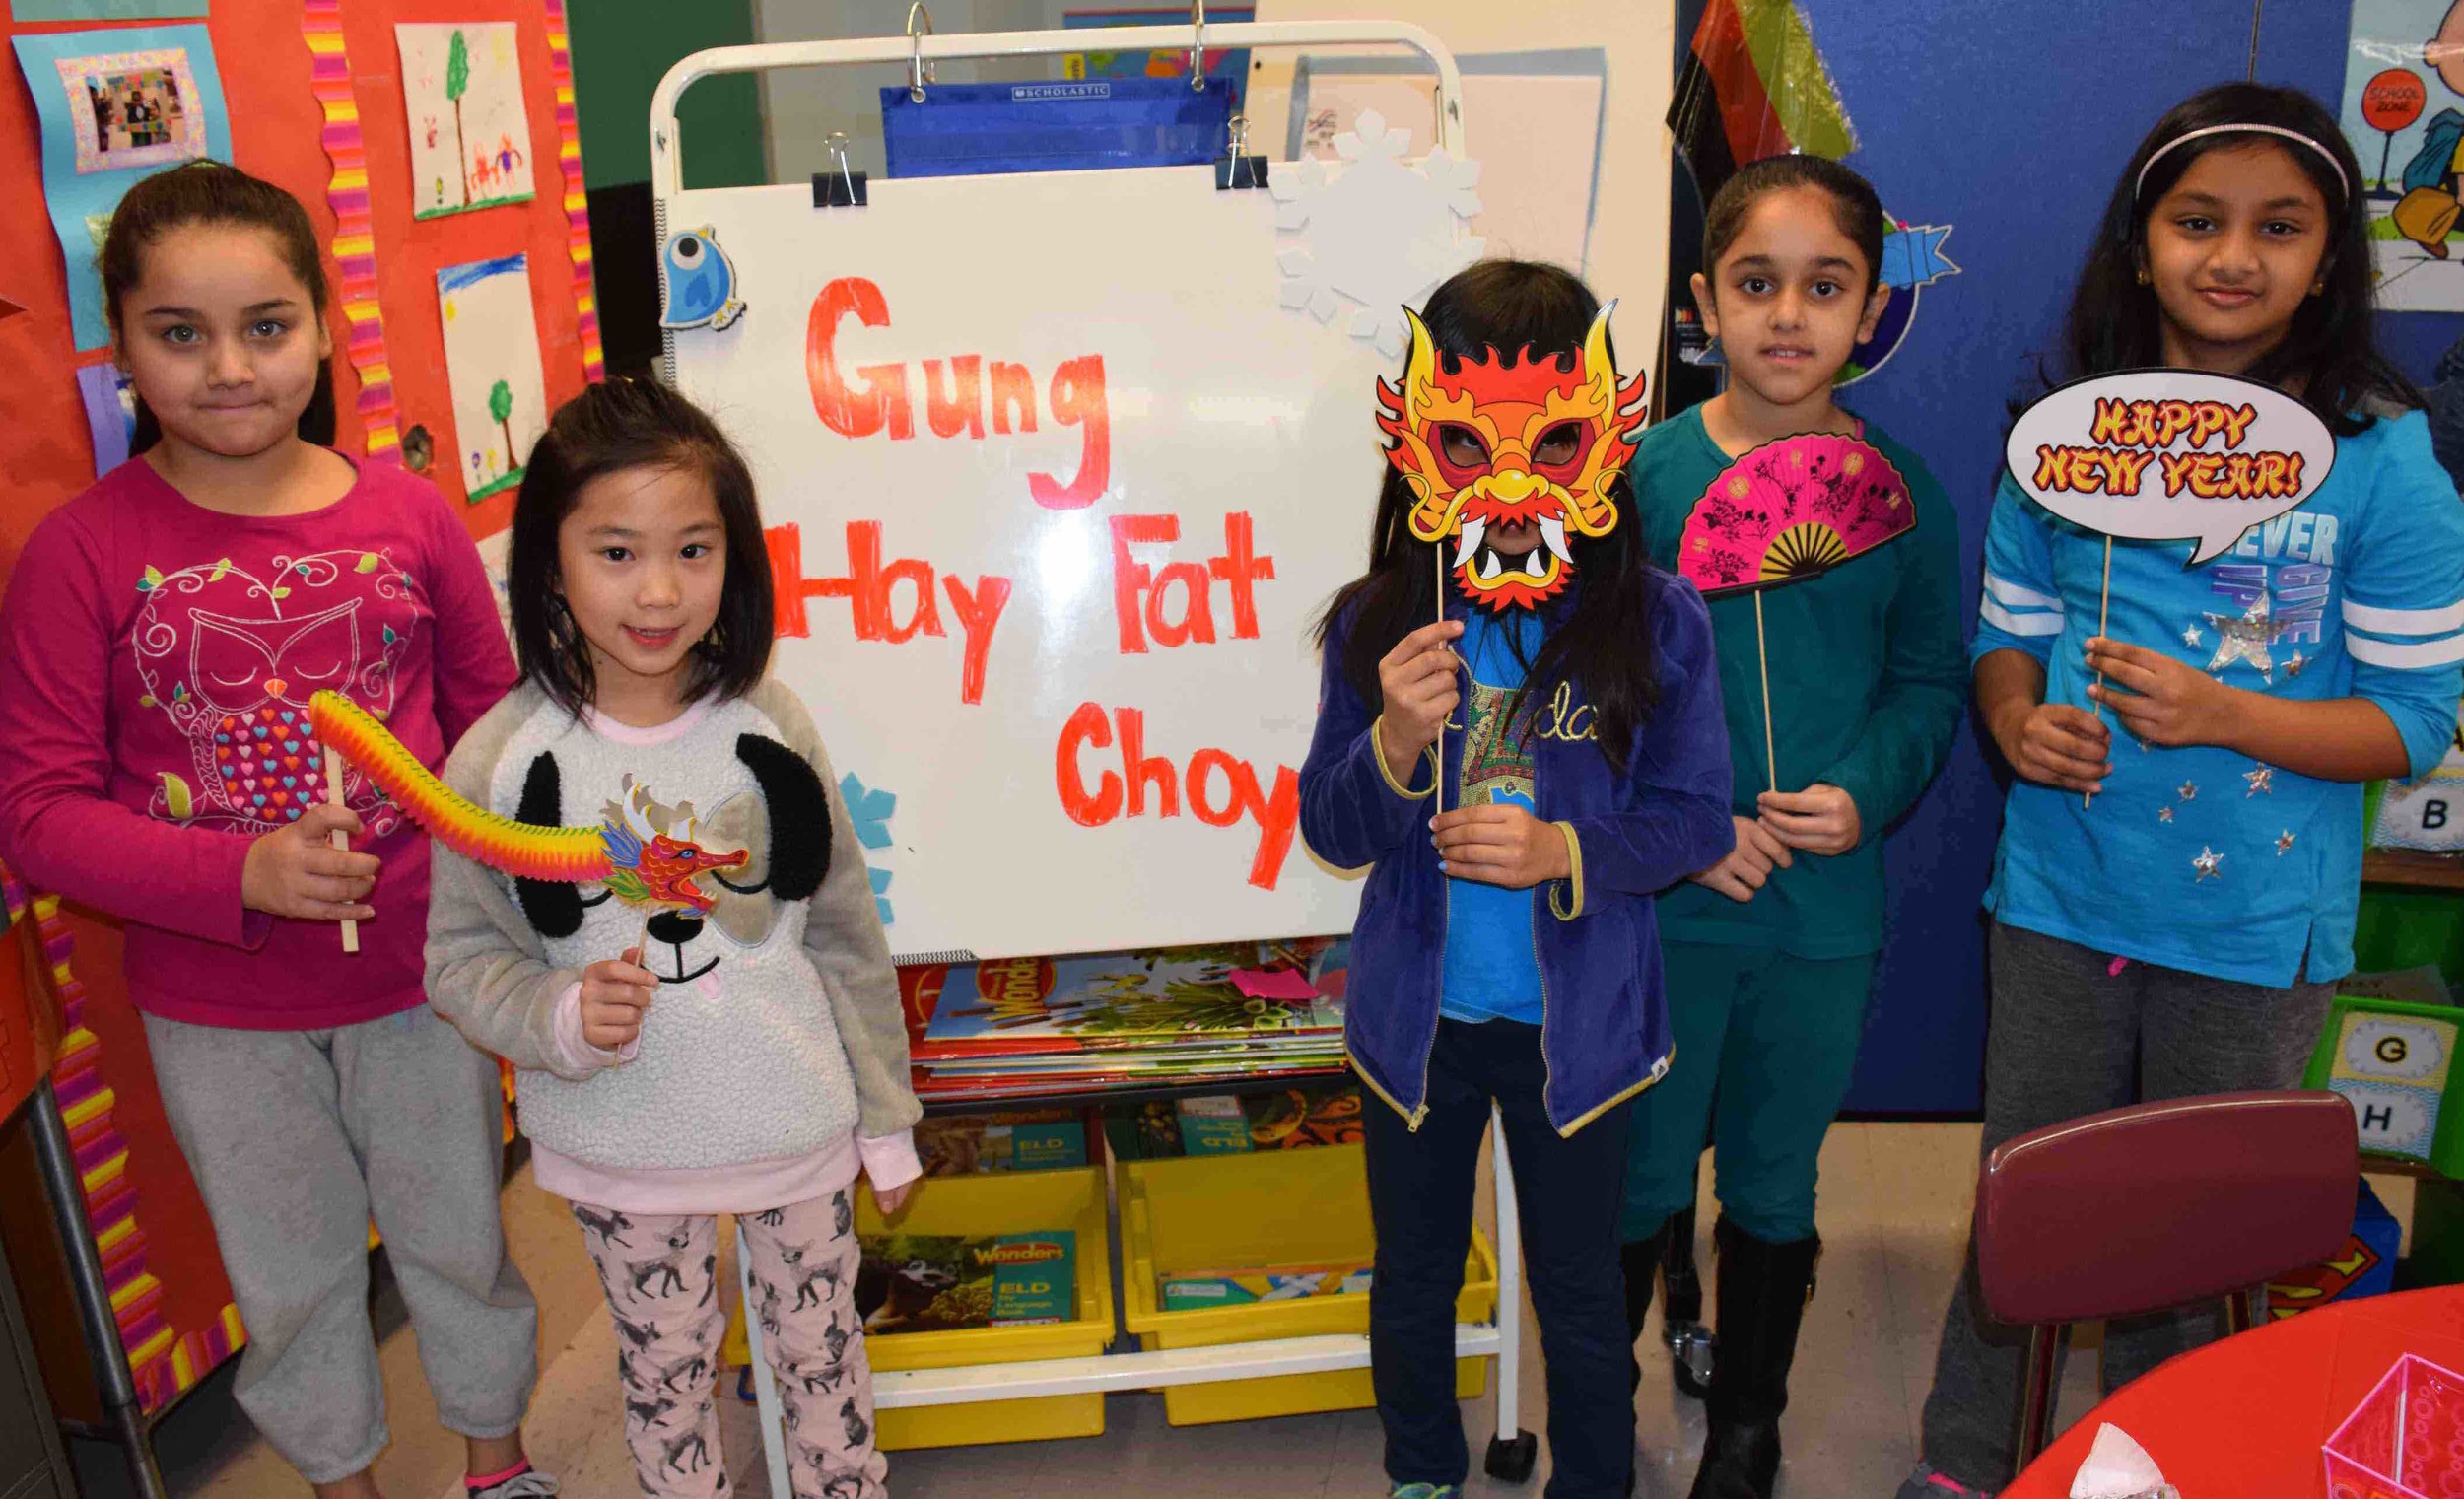 English as a New Language students at Meadowbrook Elementary School celebrated the Chinese New Year with a variety of holiday-themed activities.